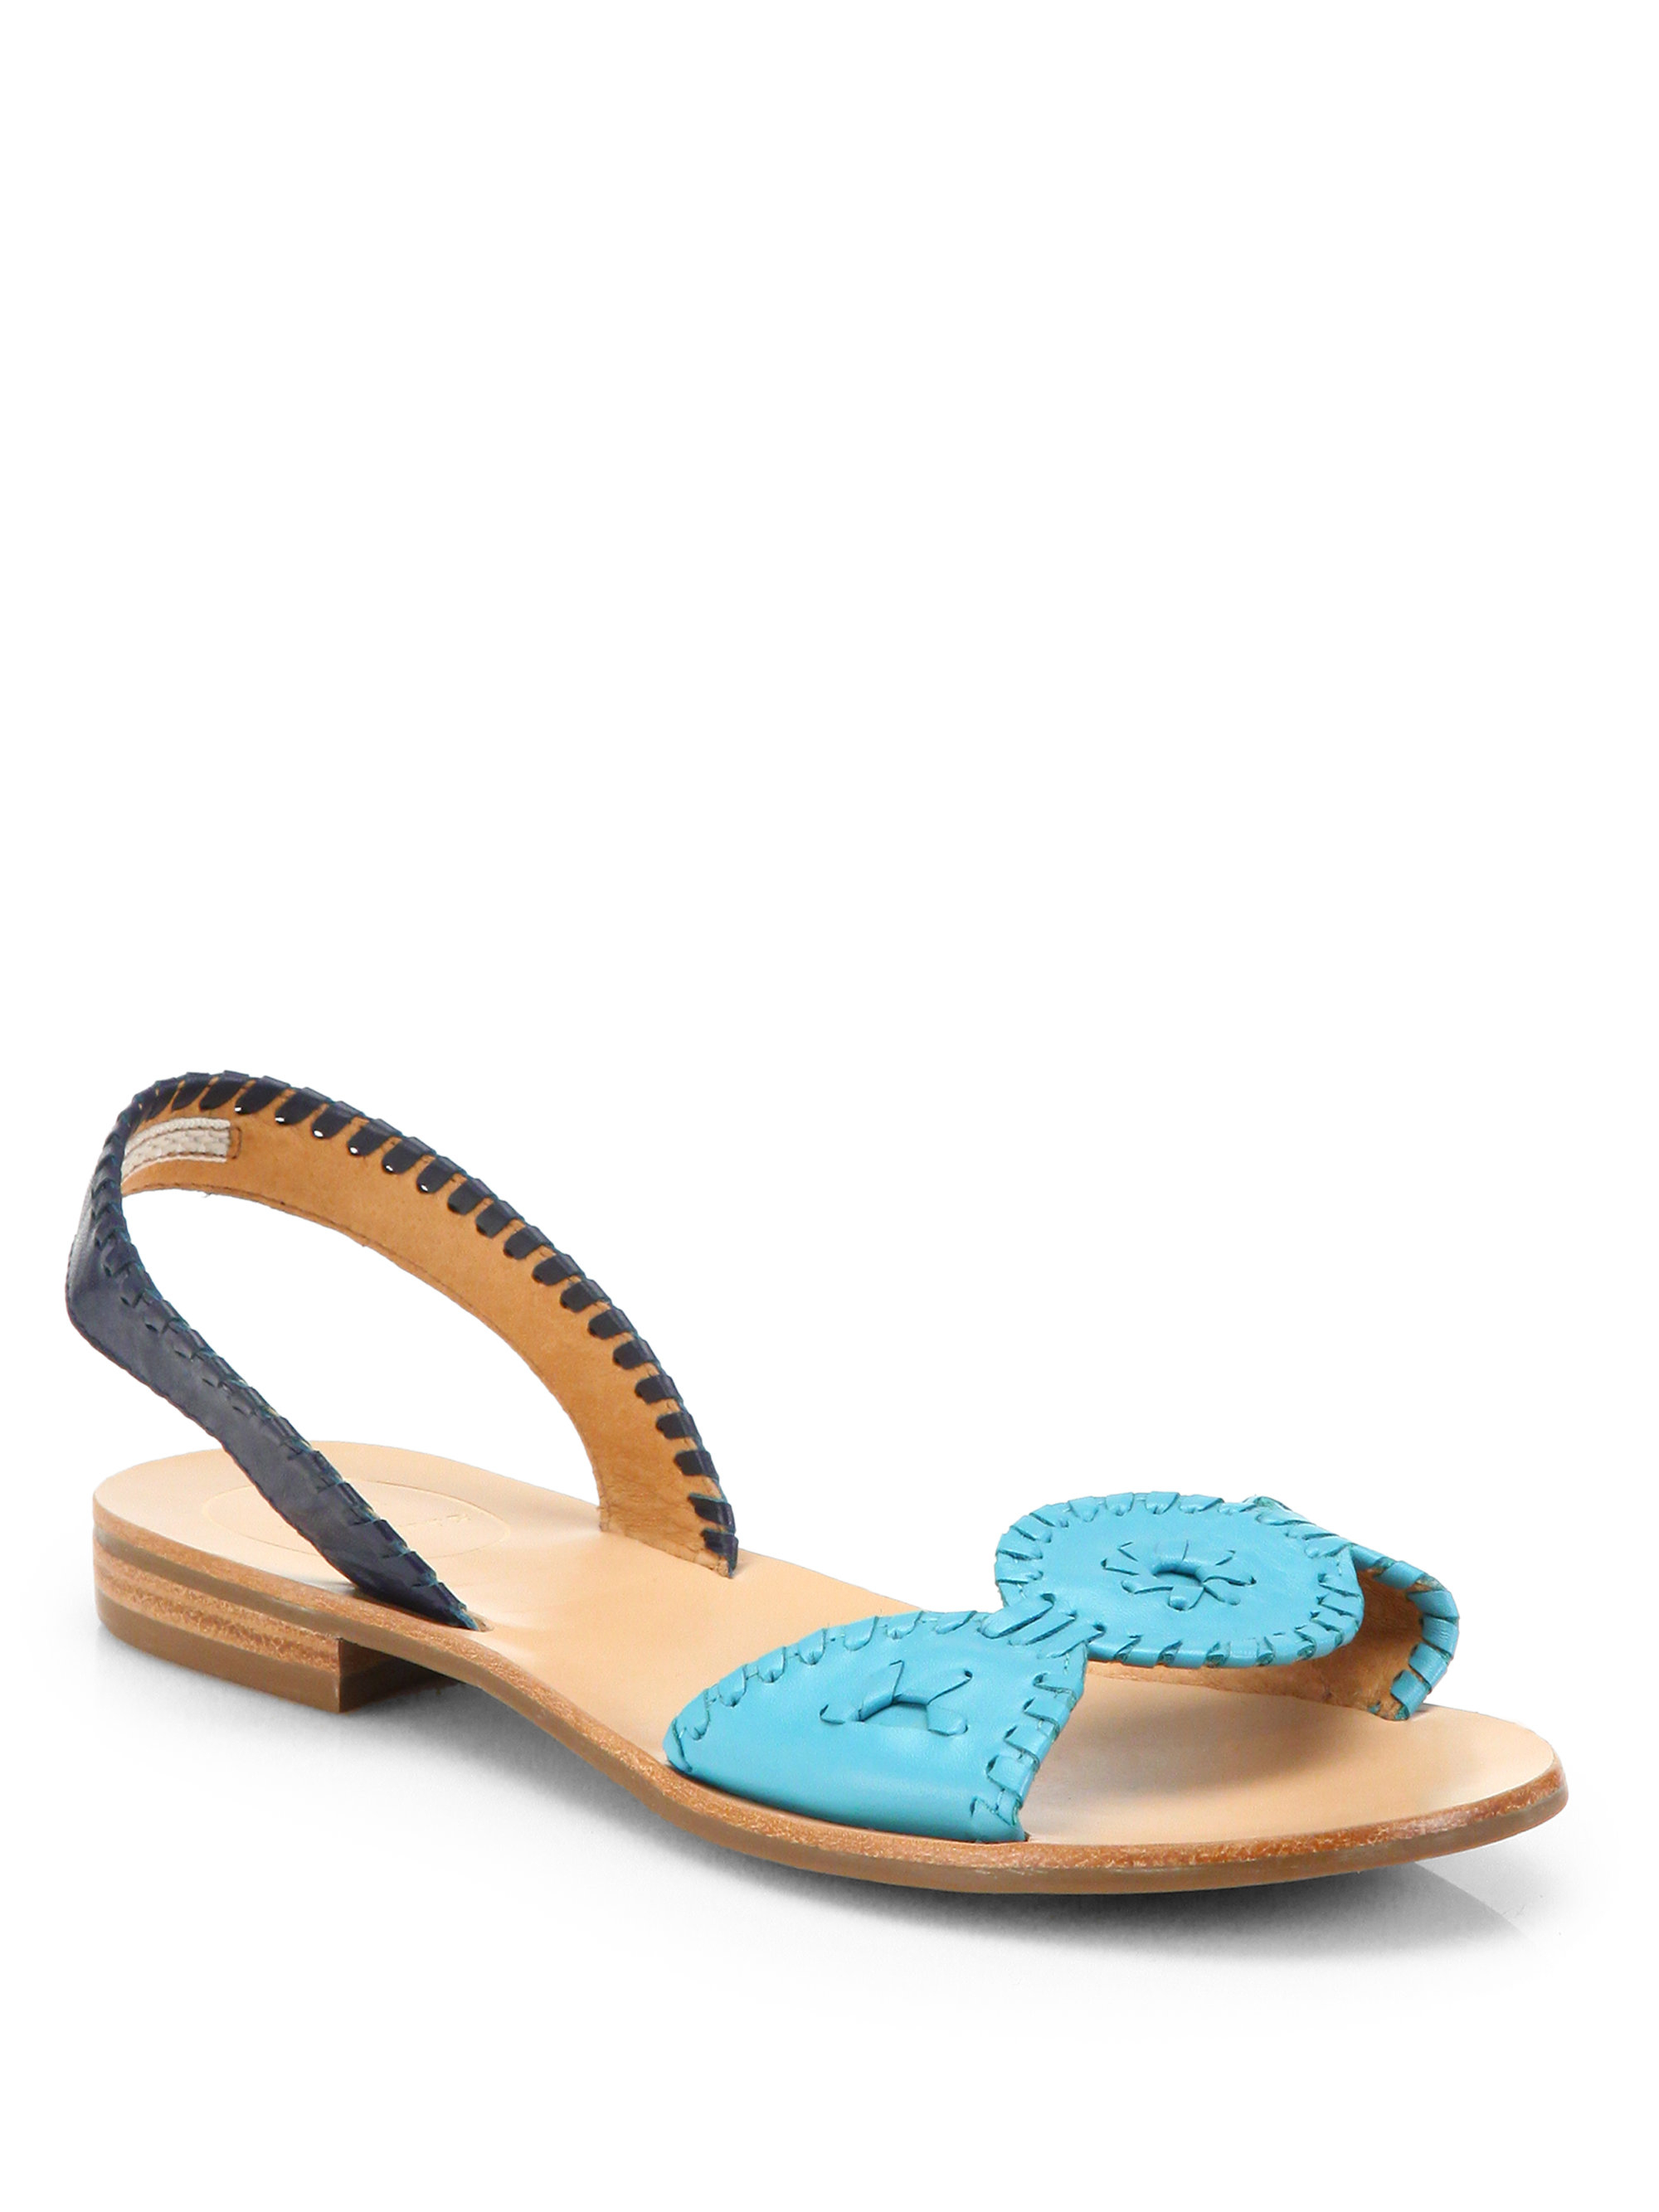 Lyst Jack Rogers Lilliana Leather Slingback Sandals In Blue